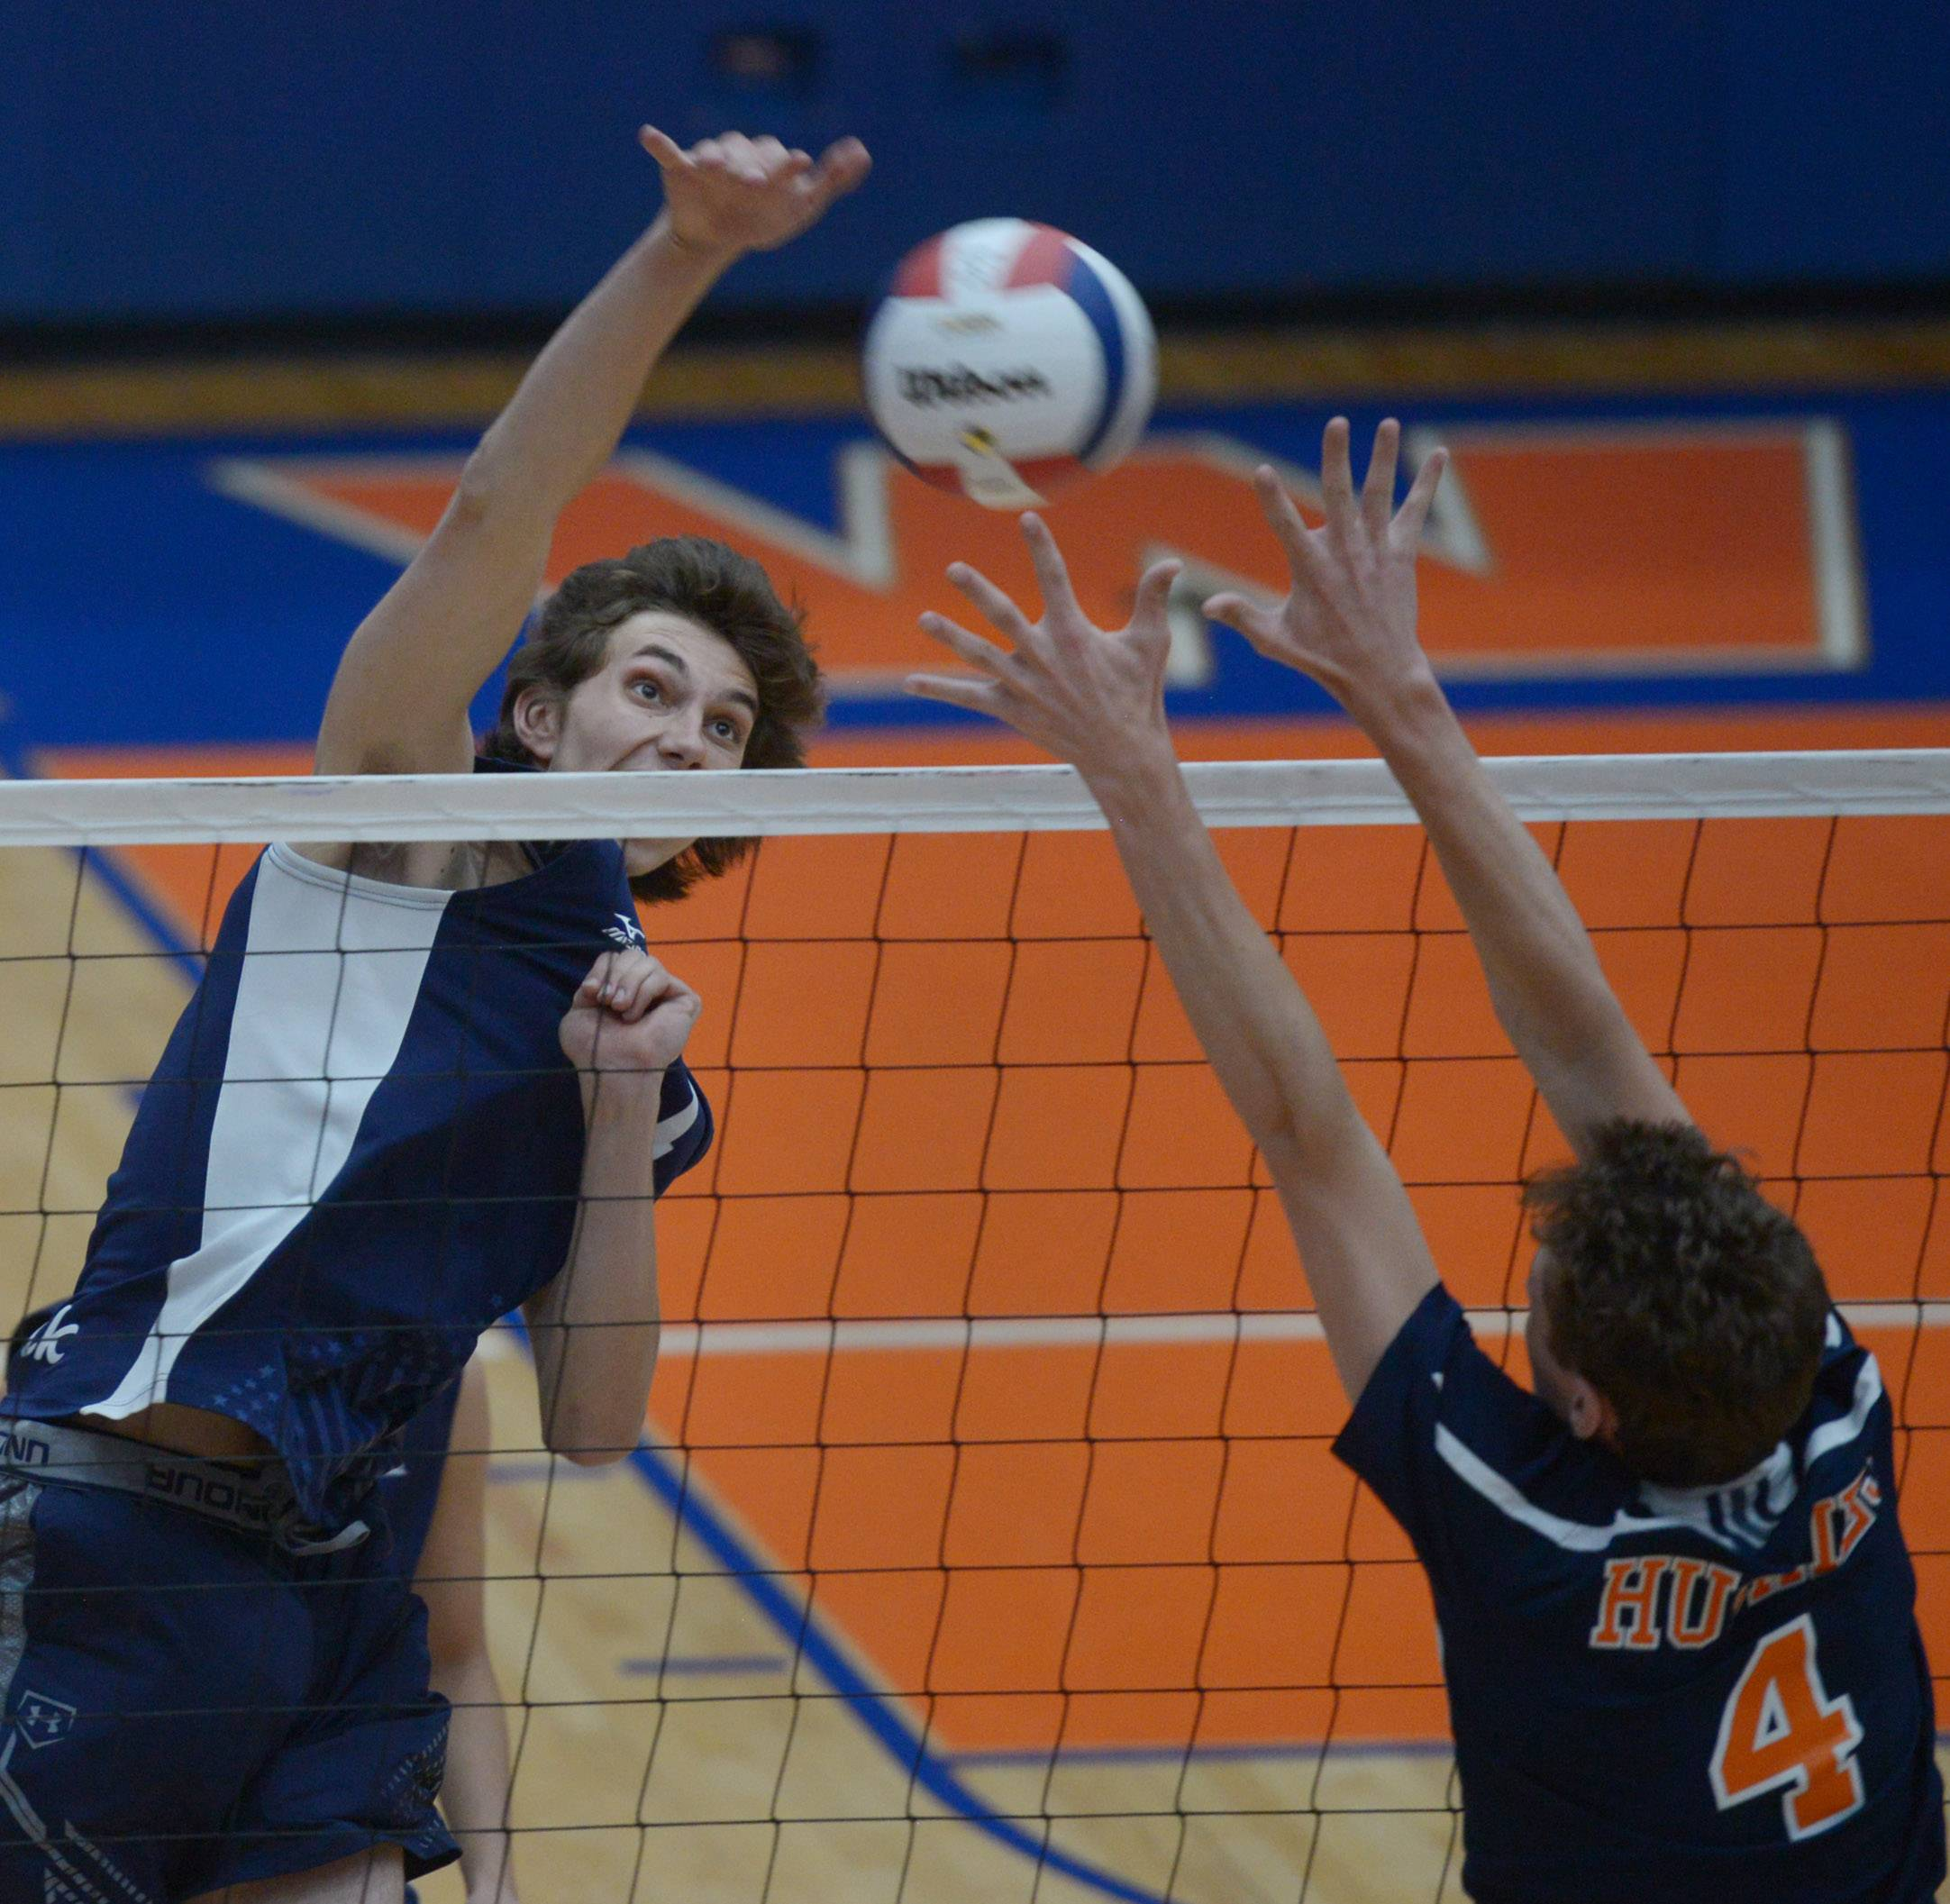 Lake Park's Nick Martinski (11) leaps for a kill as Oak Park-River Forest's Evan Bebe tries to block the ball at the net during the boys volleyball state quarterfinals at Hoffman Estates High School Friday.